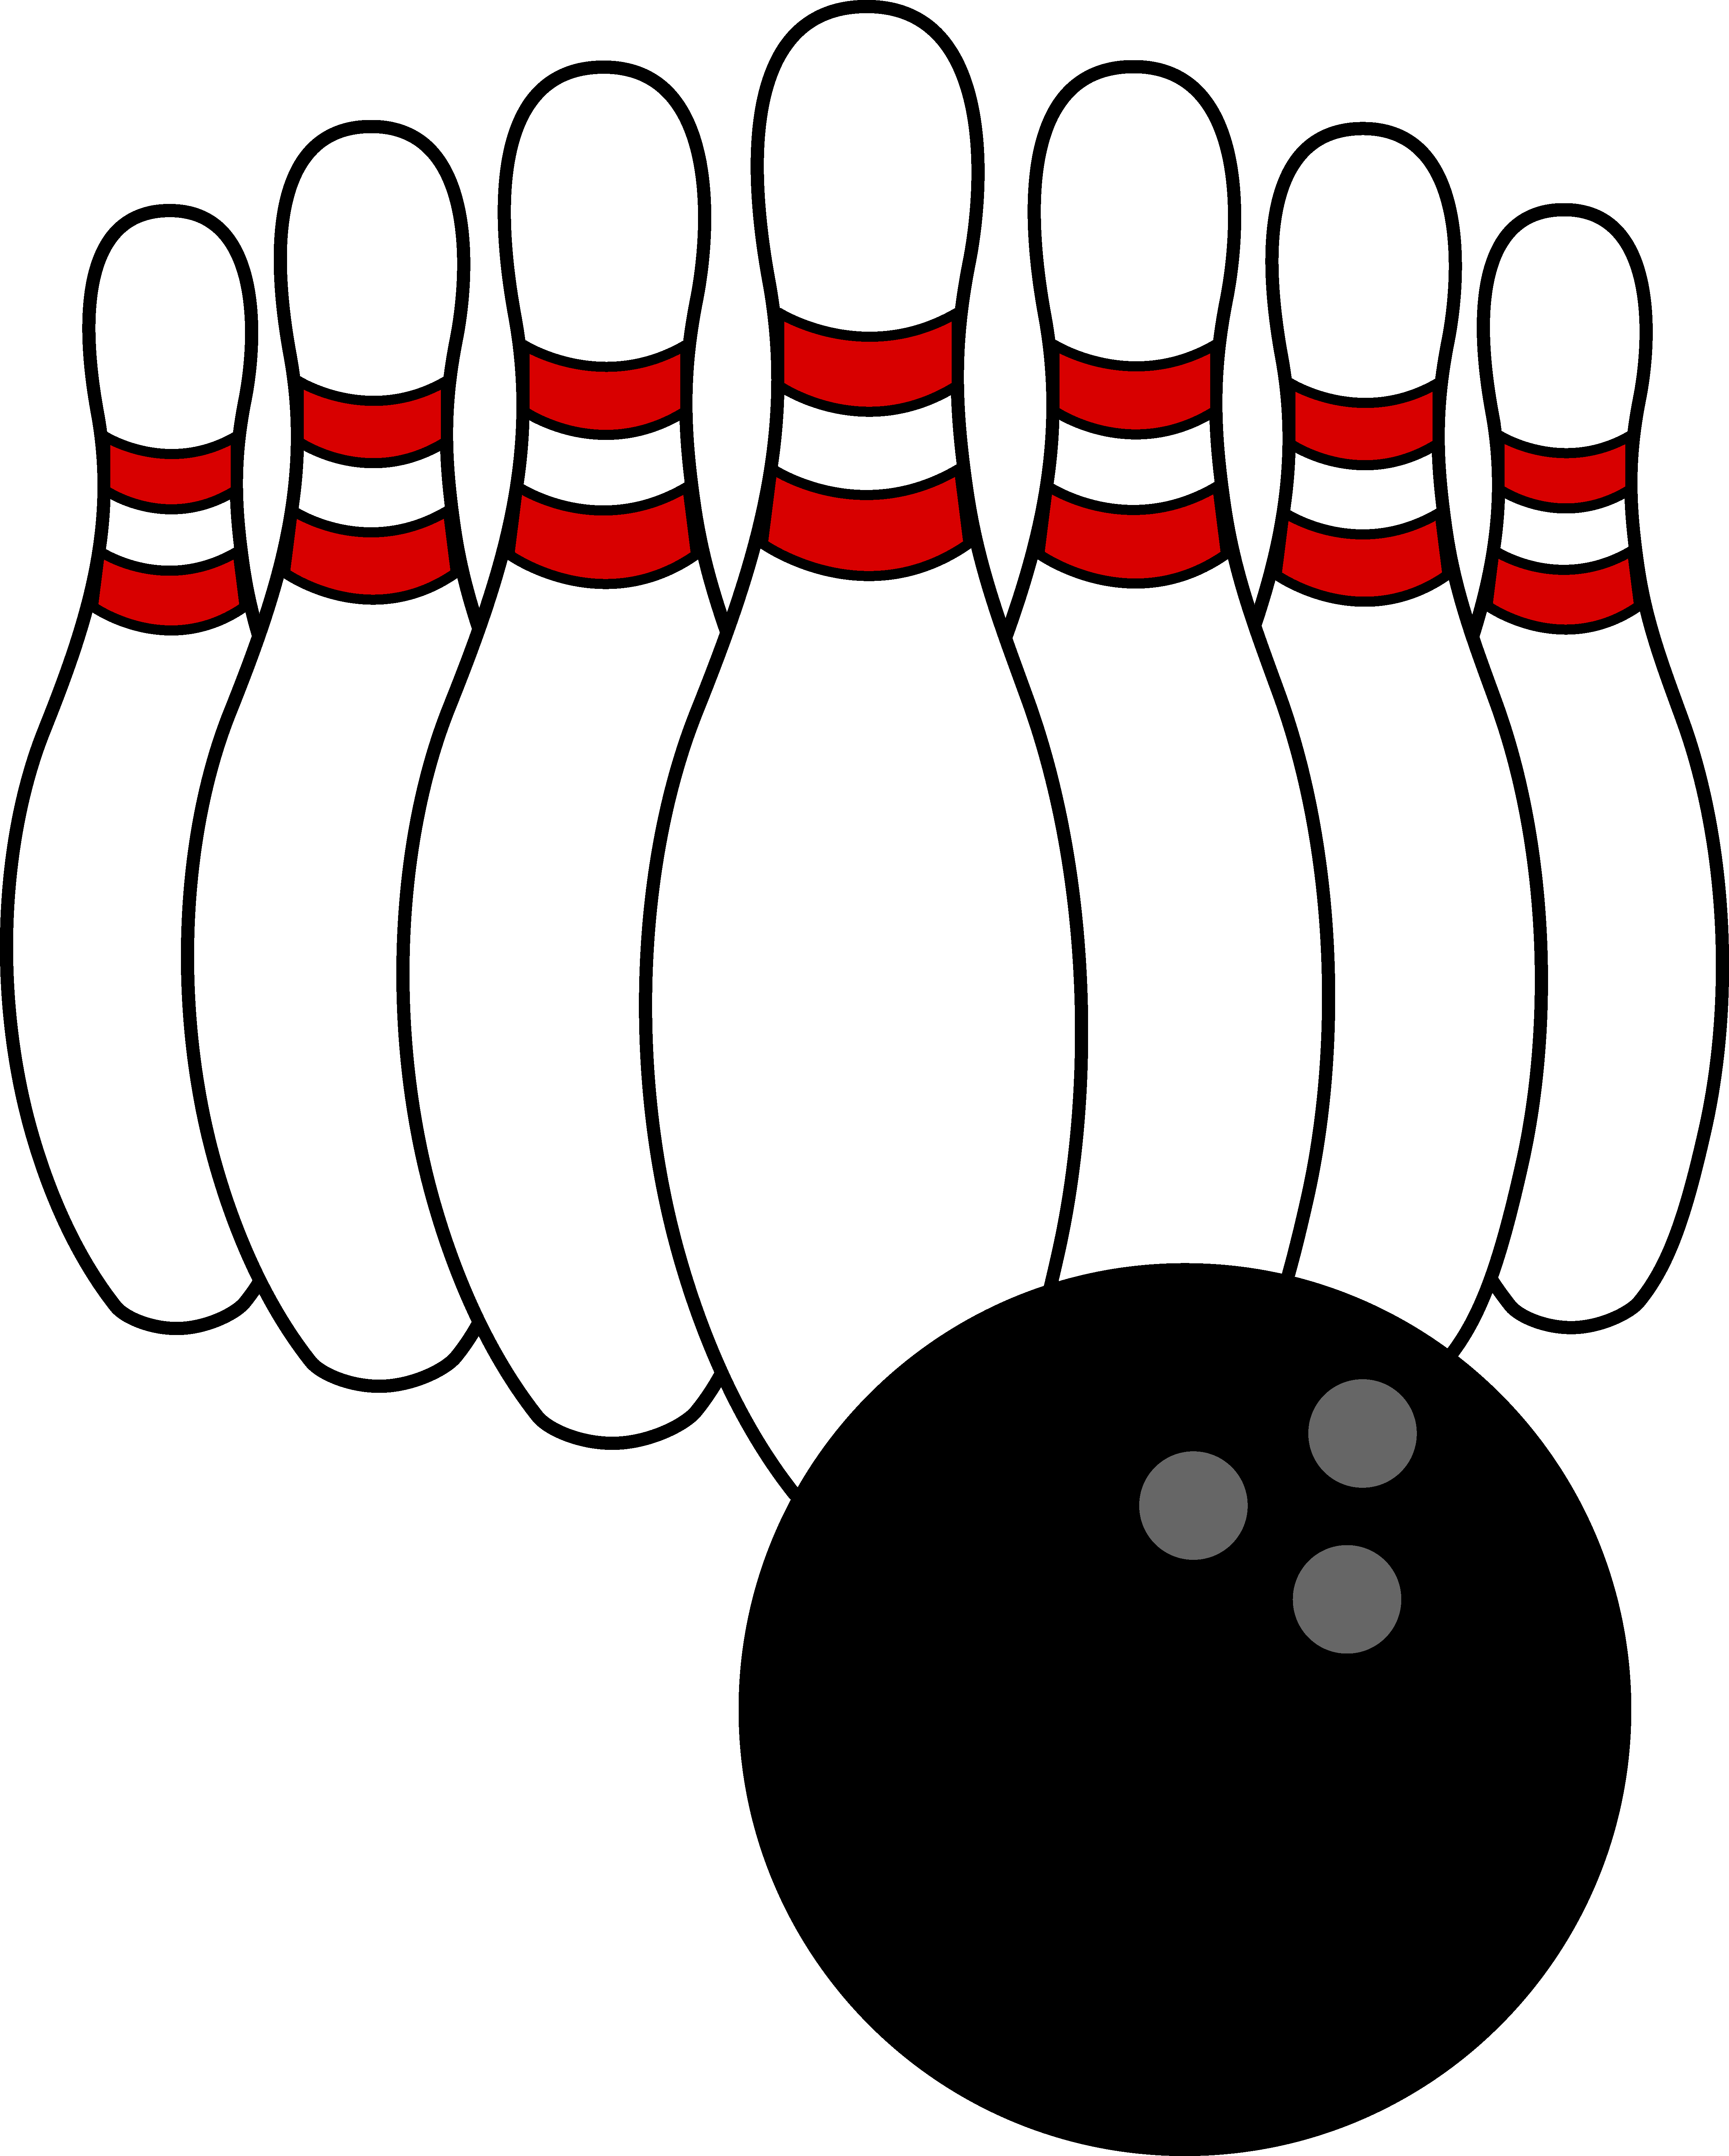 Floor clipart bowling alley. Free download clip art